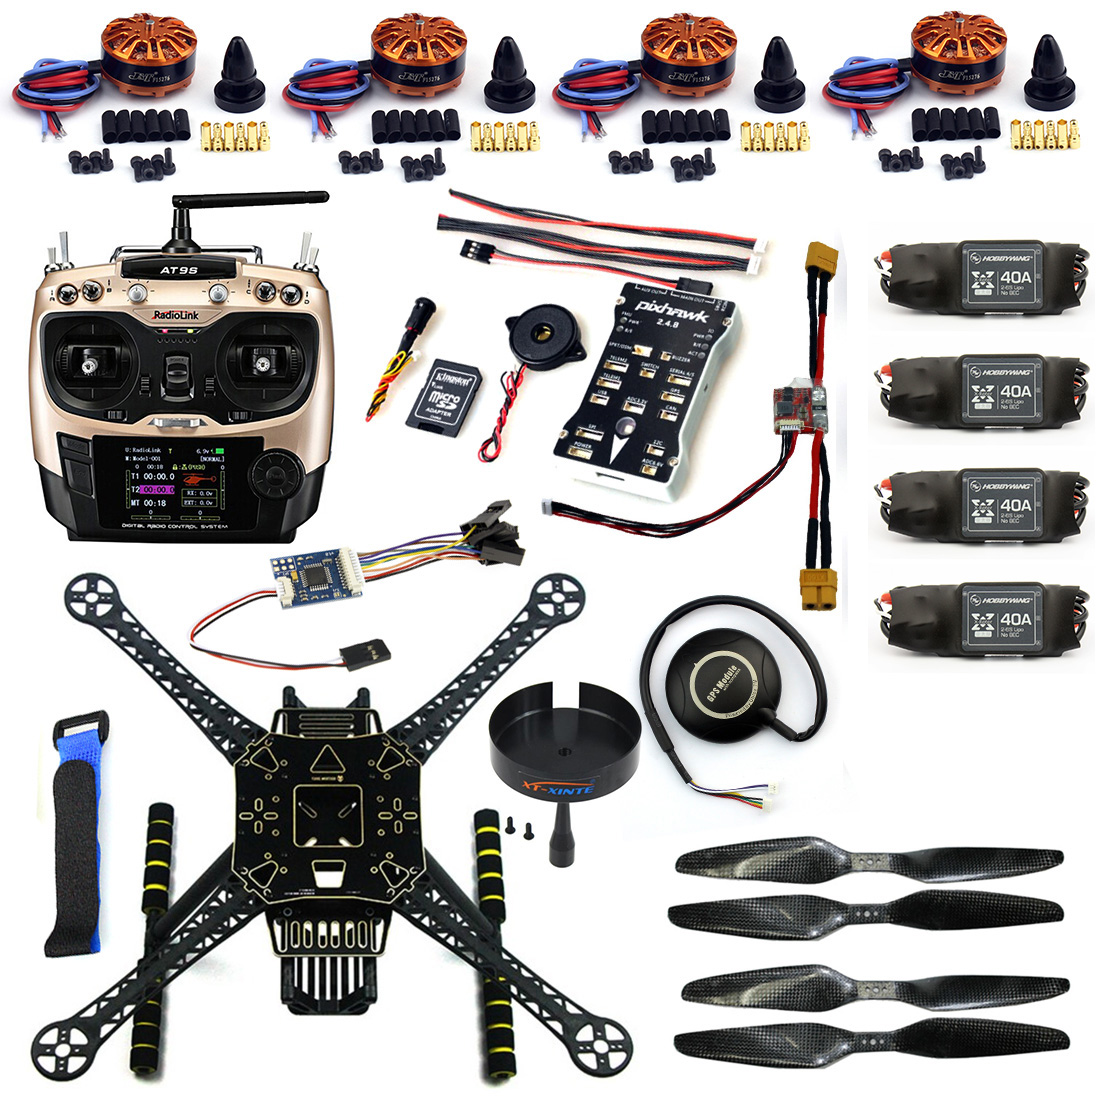 DIY FPV Drone S600 4-Axle Frame Kit Pix 2.4.8 Flight Control AT9S Transimitter GPS7M 40A ESC with 700KV Motor XT60 Plug F19457-B diy set pix4 flight control zd850 frame kit m8n gps remote control radio telemetry esc motor props rc 6 axle drone f19833 d